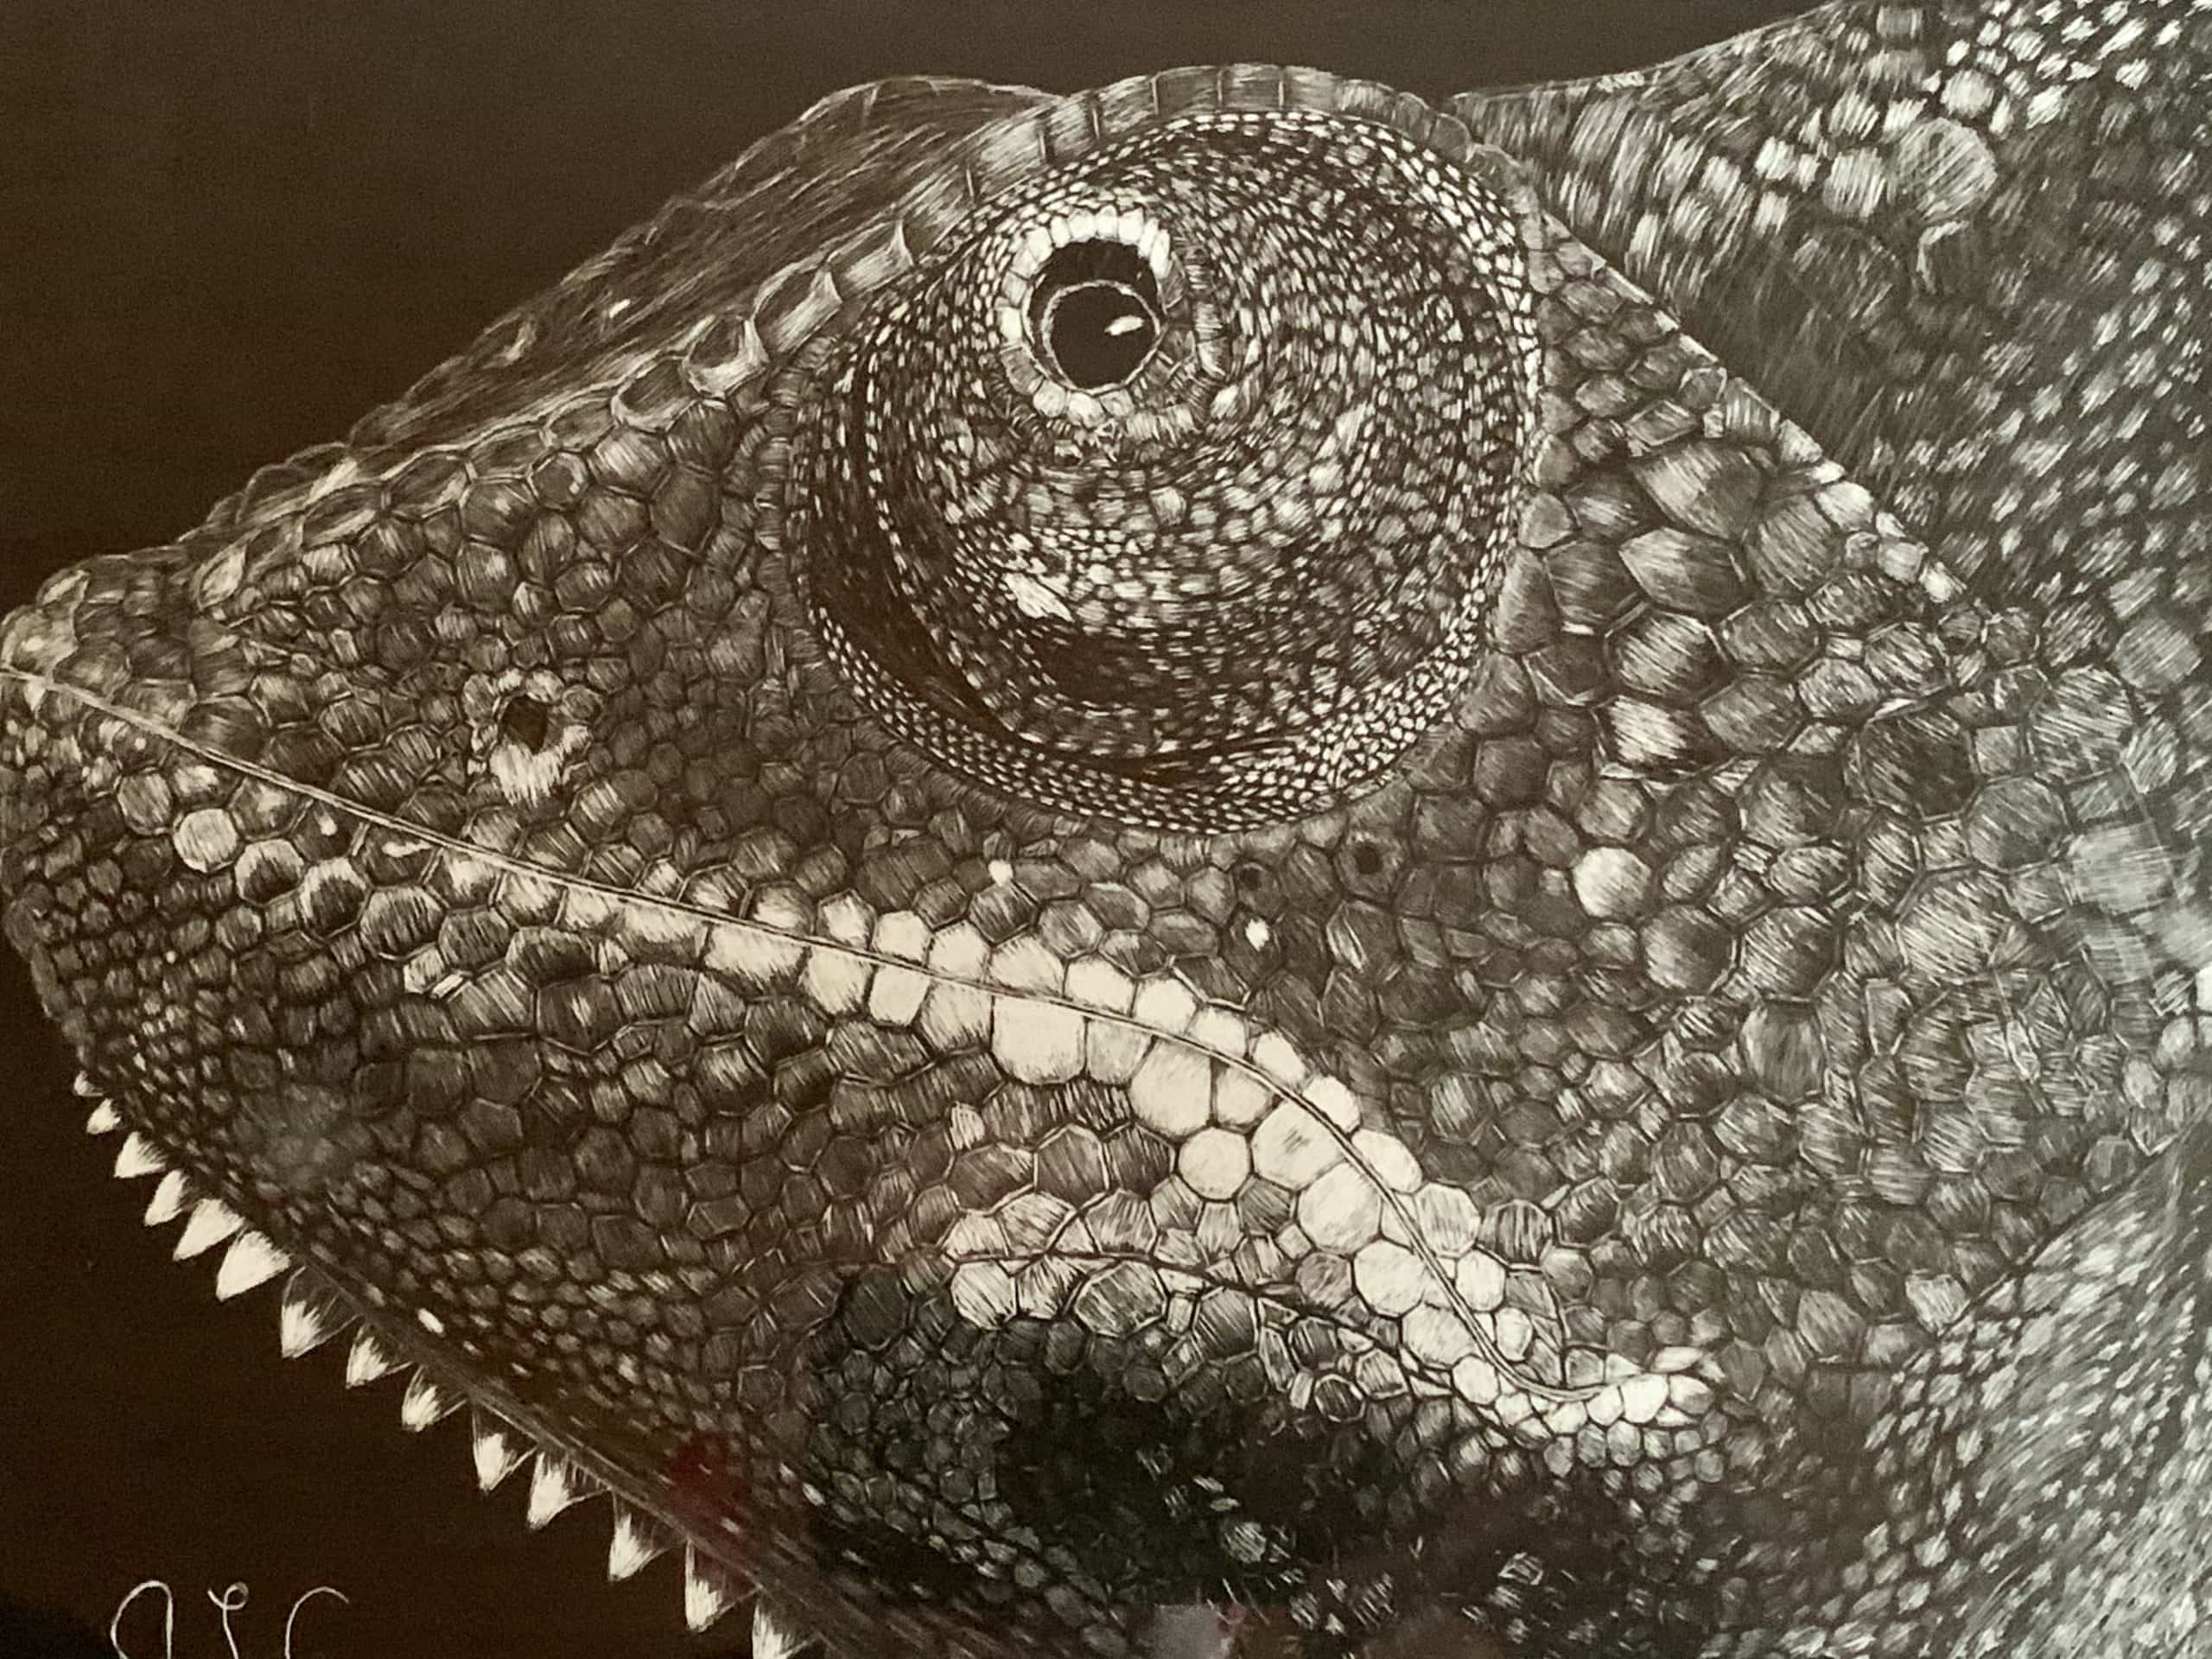 Veiled Chameleon Scratchboard Under Glass